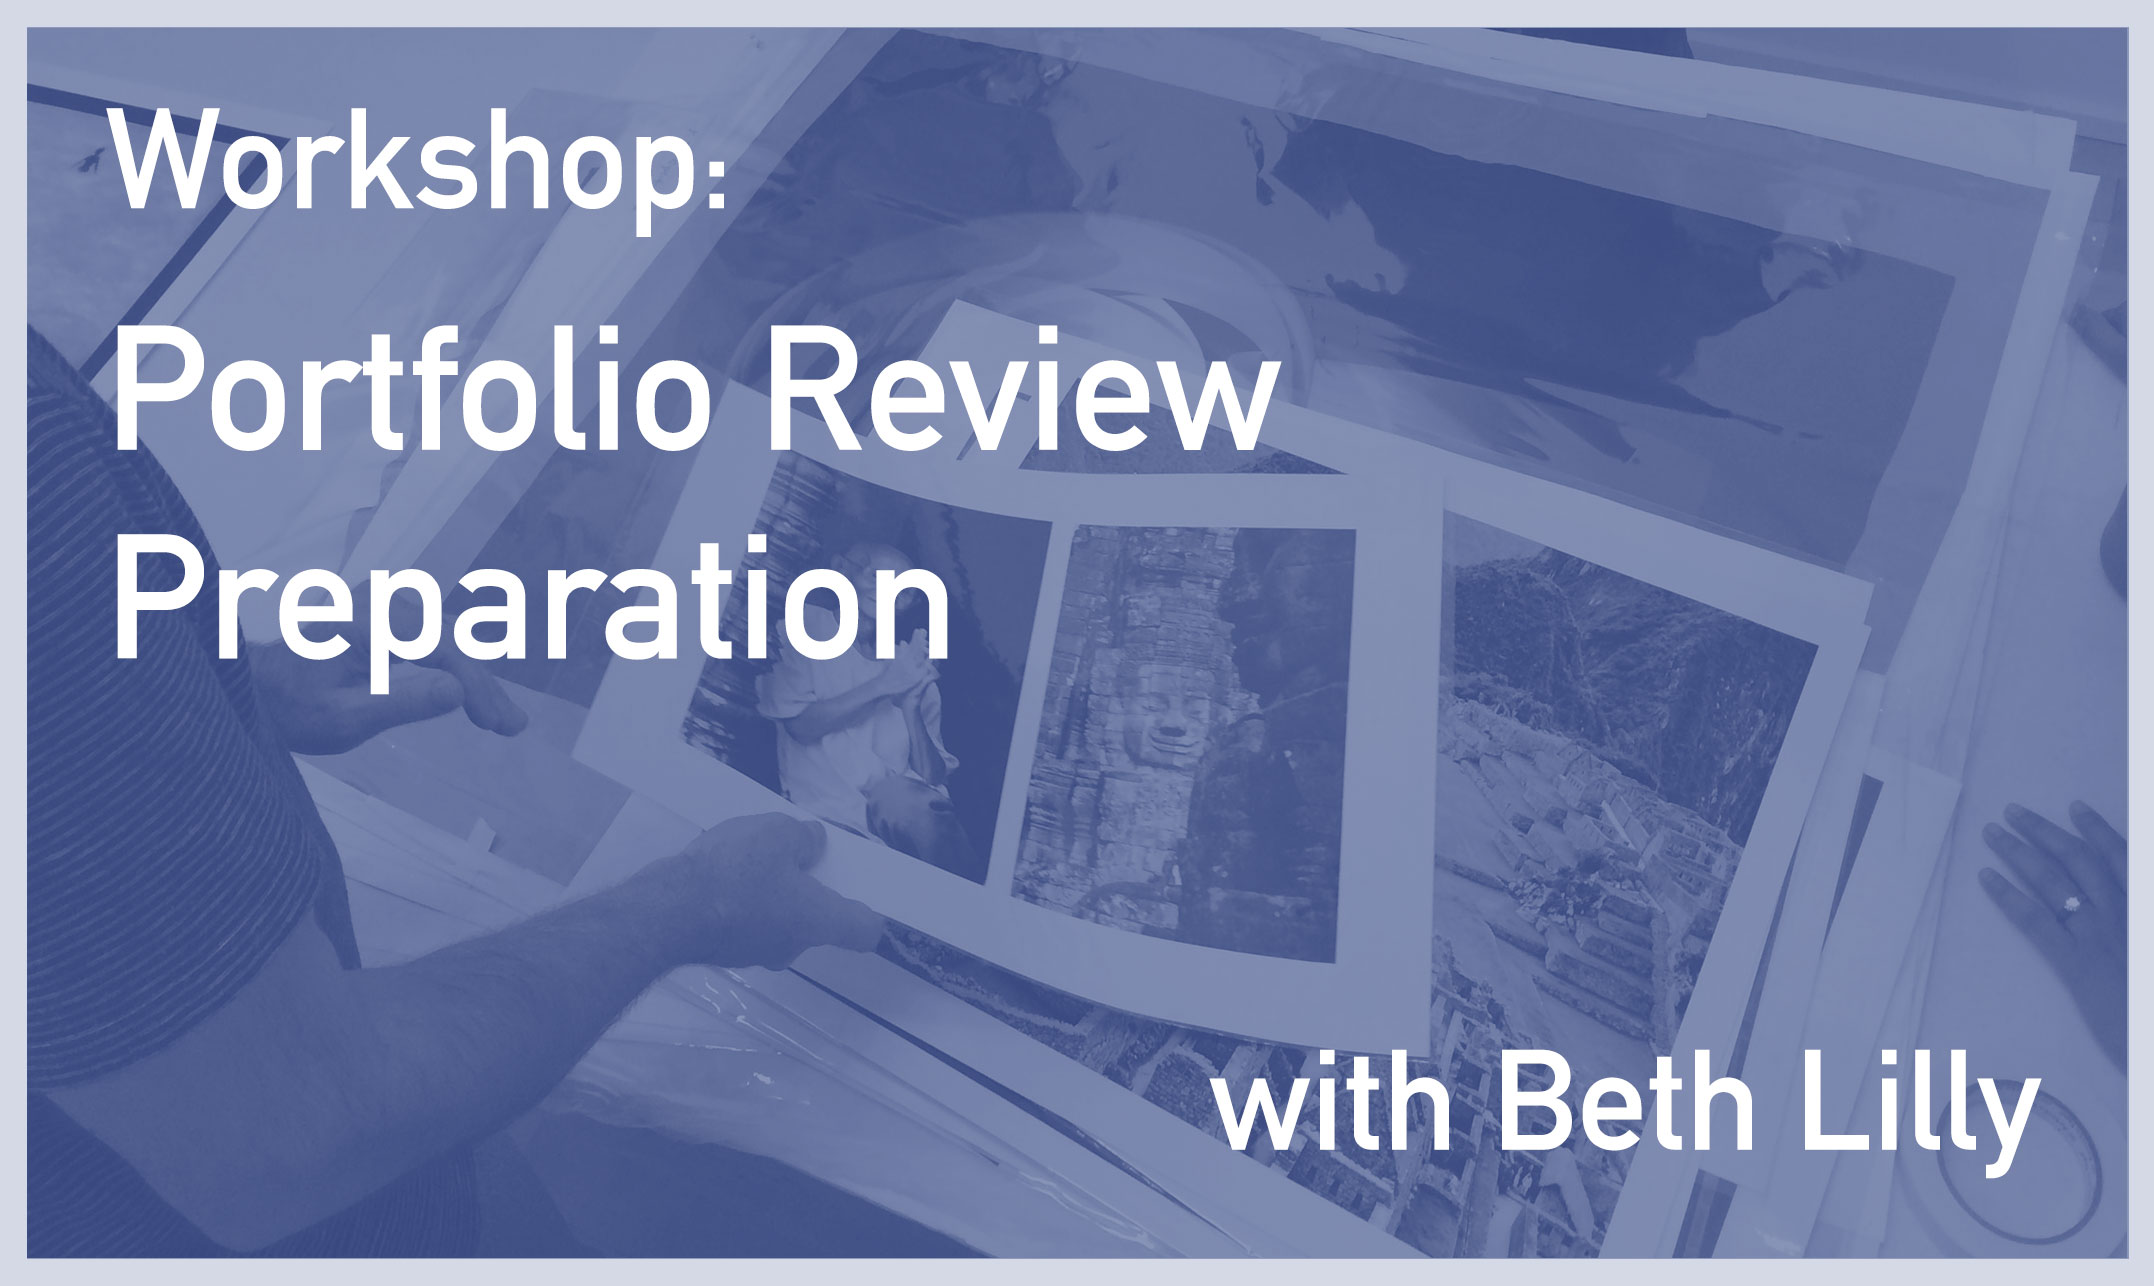 Portfolio-Review-Preparation-07.jpg